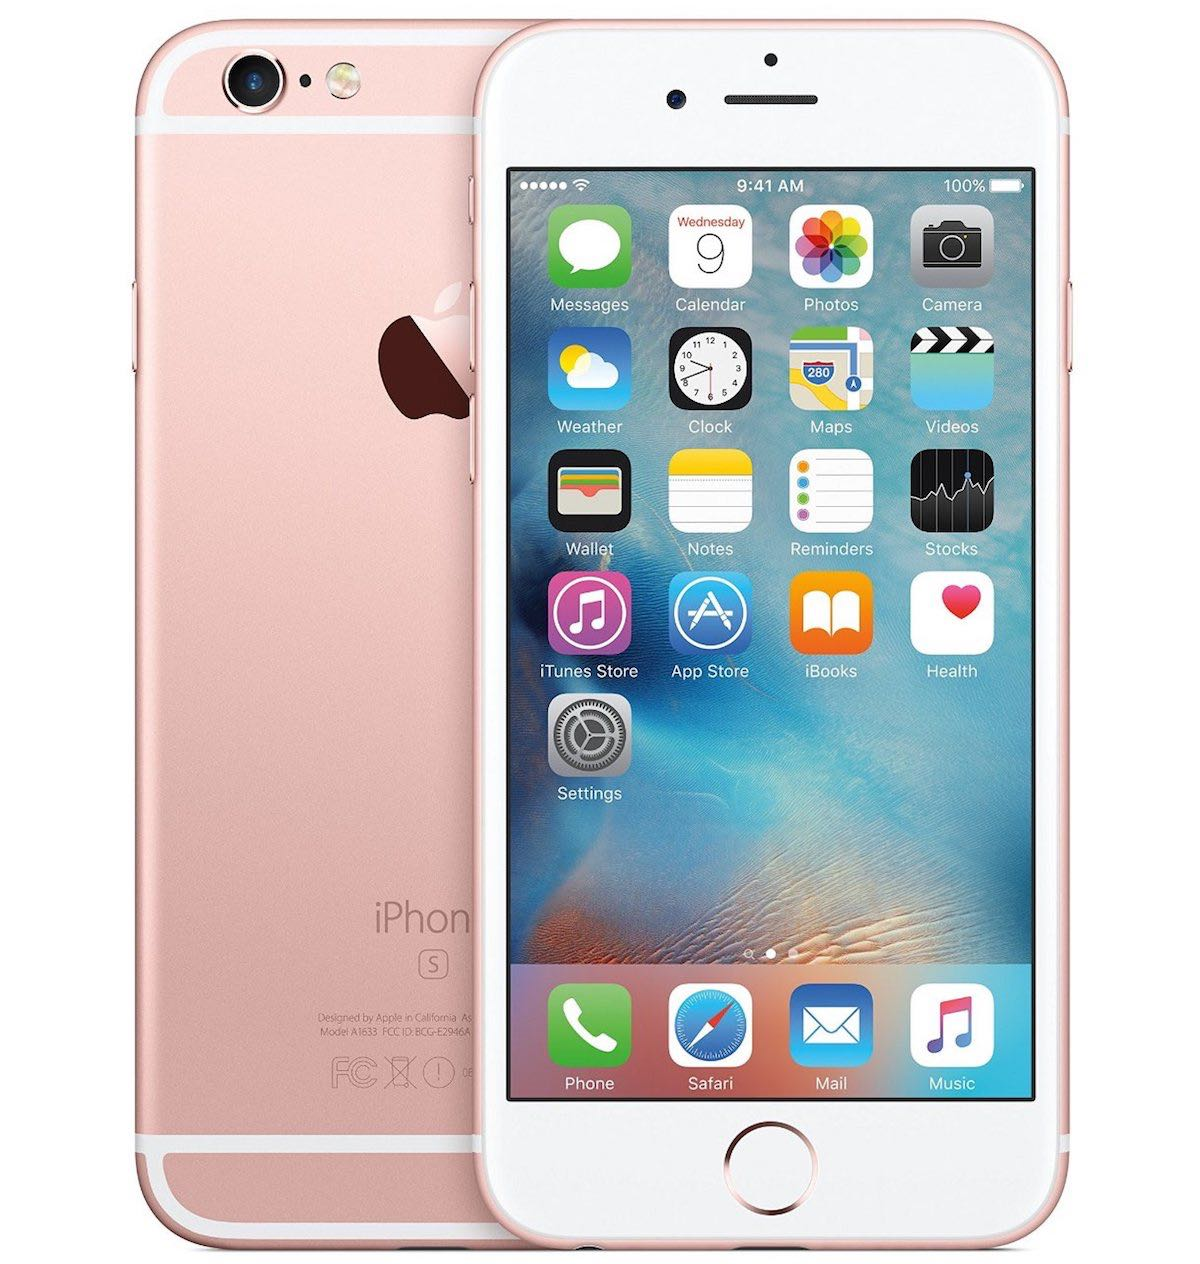 Apple iPhone 6s Buy Shop Rose Gold